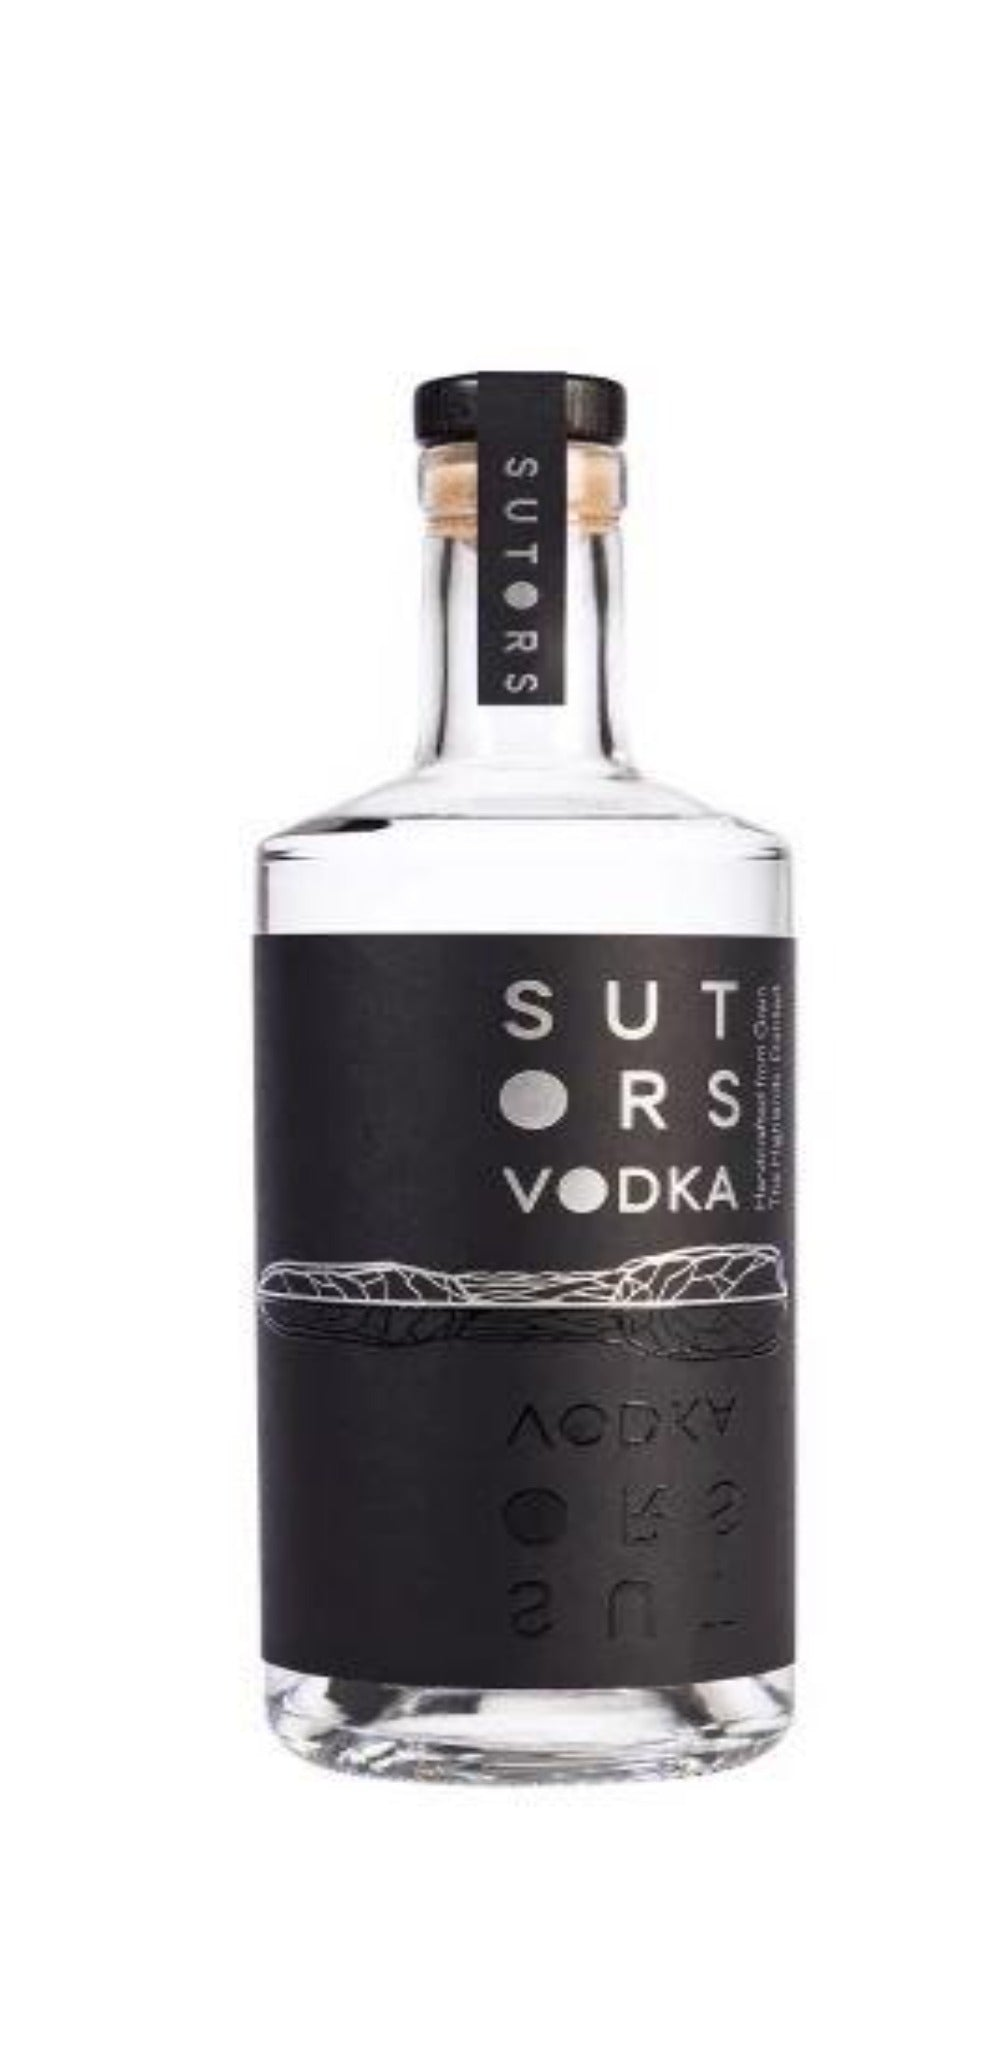 10% Off - Sutors Vodka